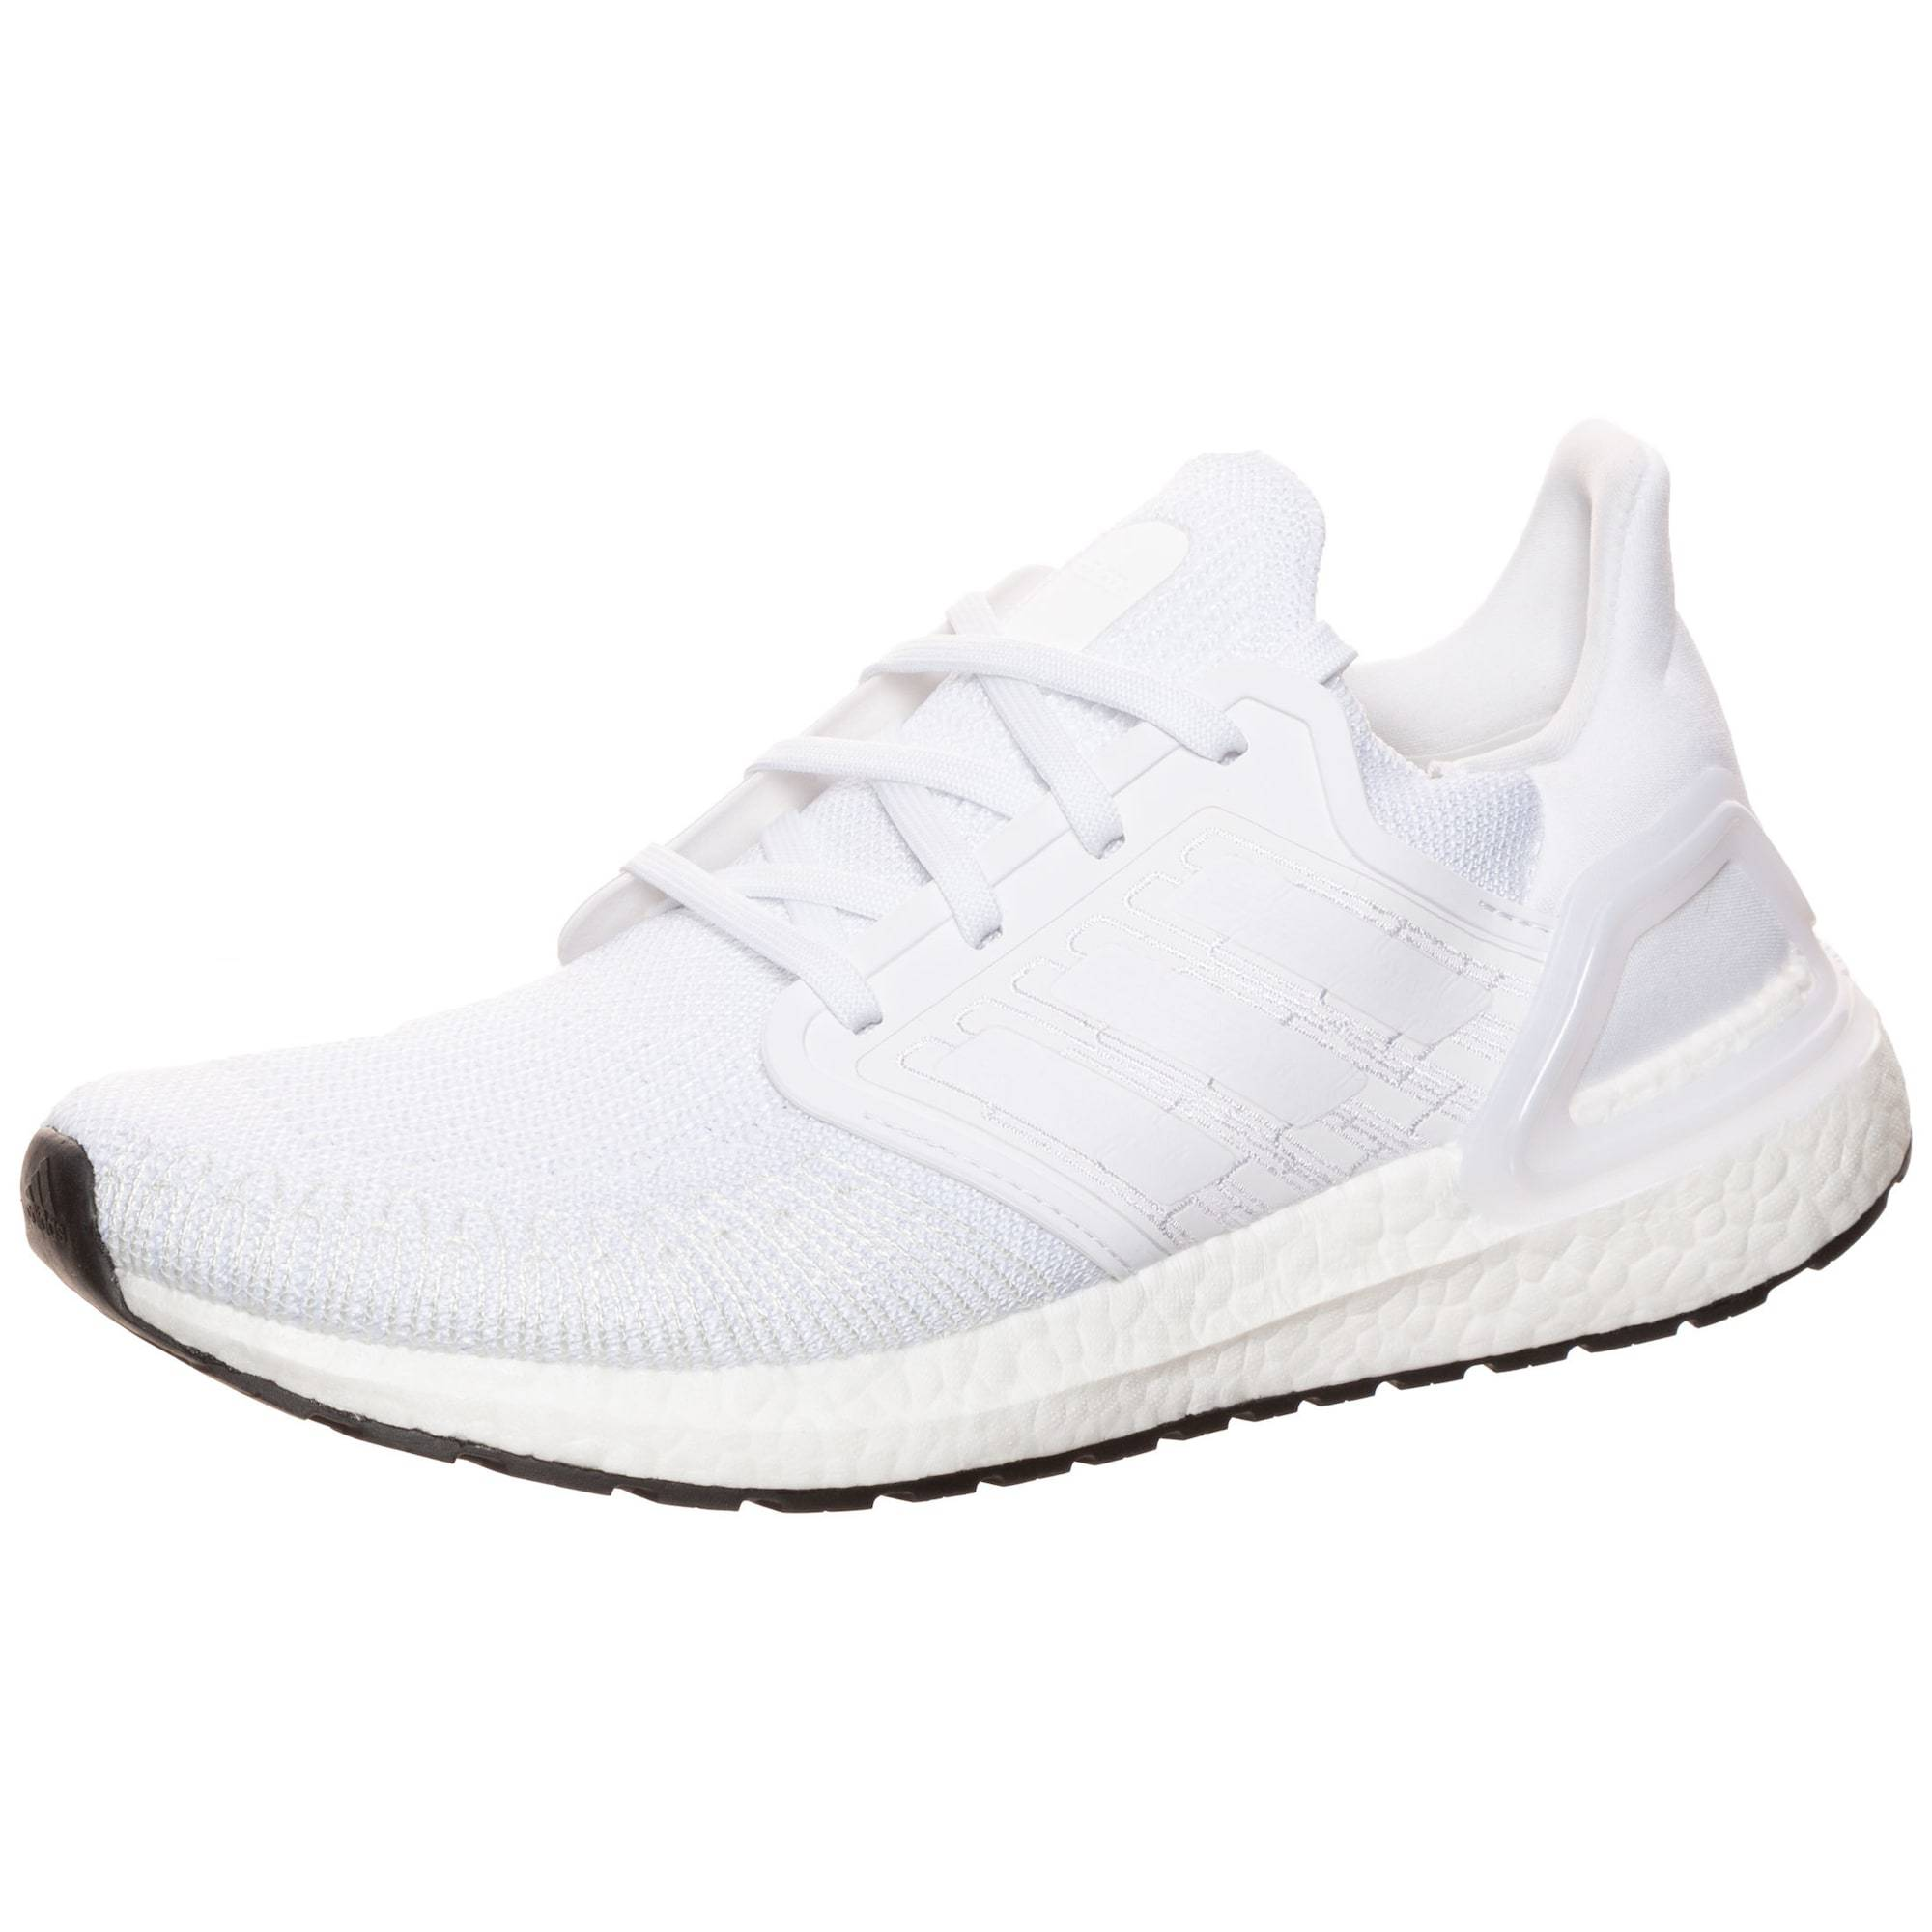 ADIDAS PERFORMANCE Chaussure de course 'ULTRABOOST 20 W'  - Blanc - Taille: 7 - female